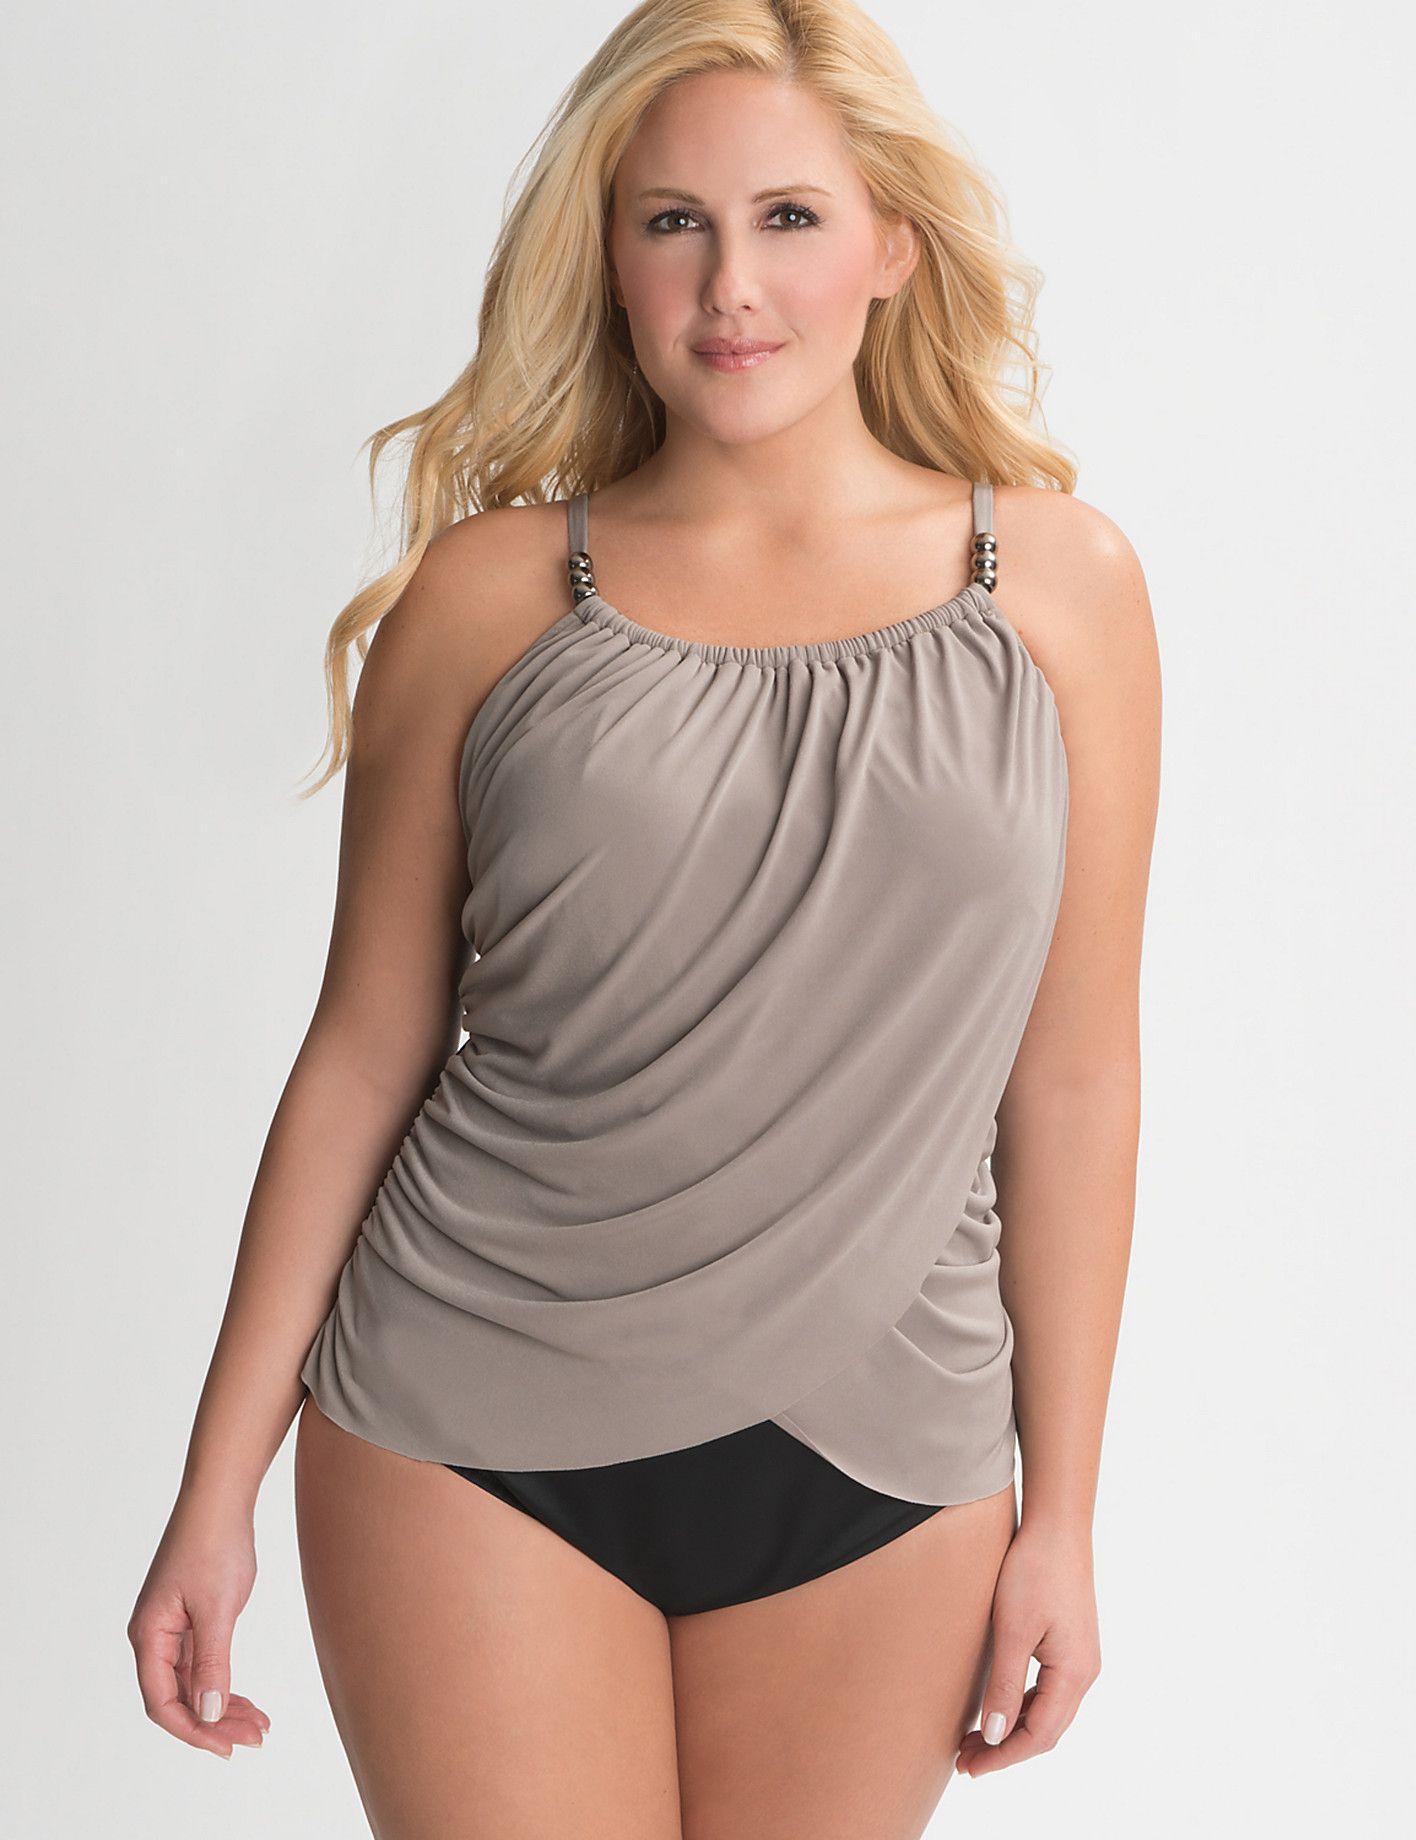 80757ab02b452 Plus Size Beaded Maillot by Miraclesuit from Sonsi | Getaway ...